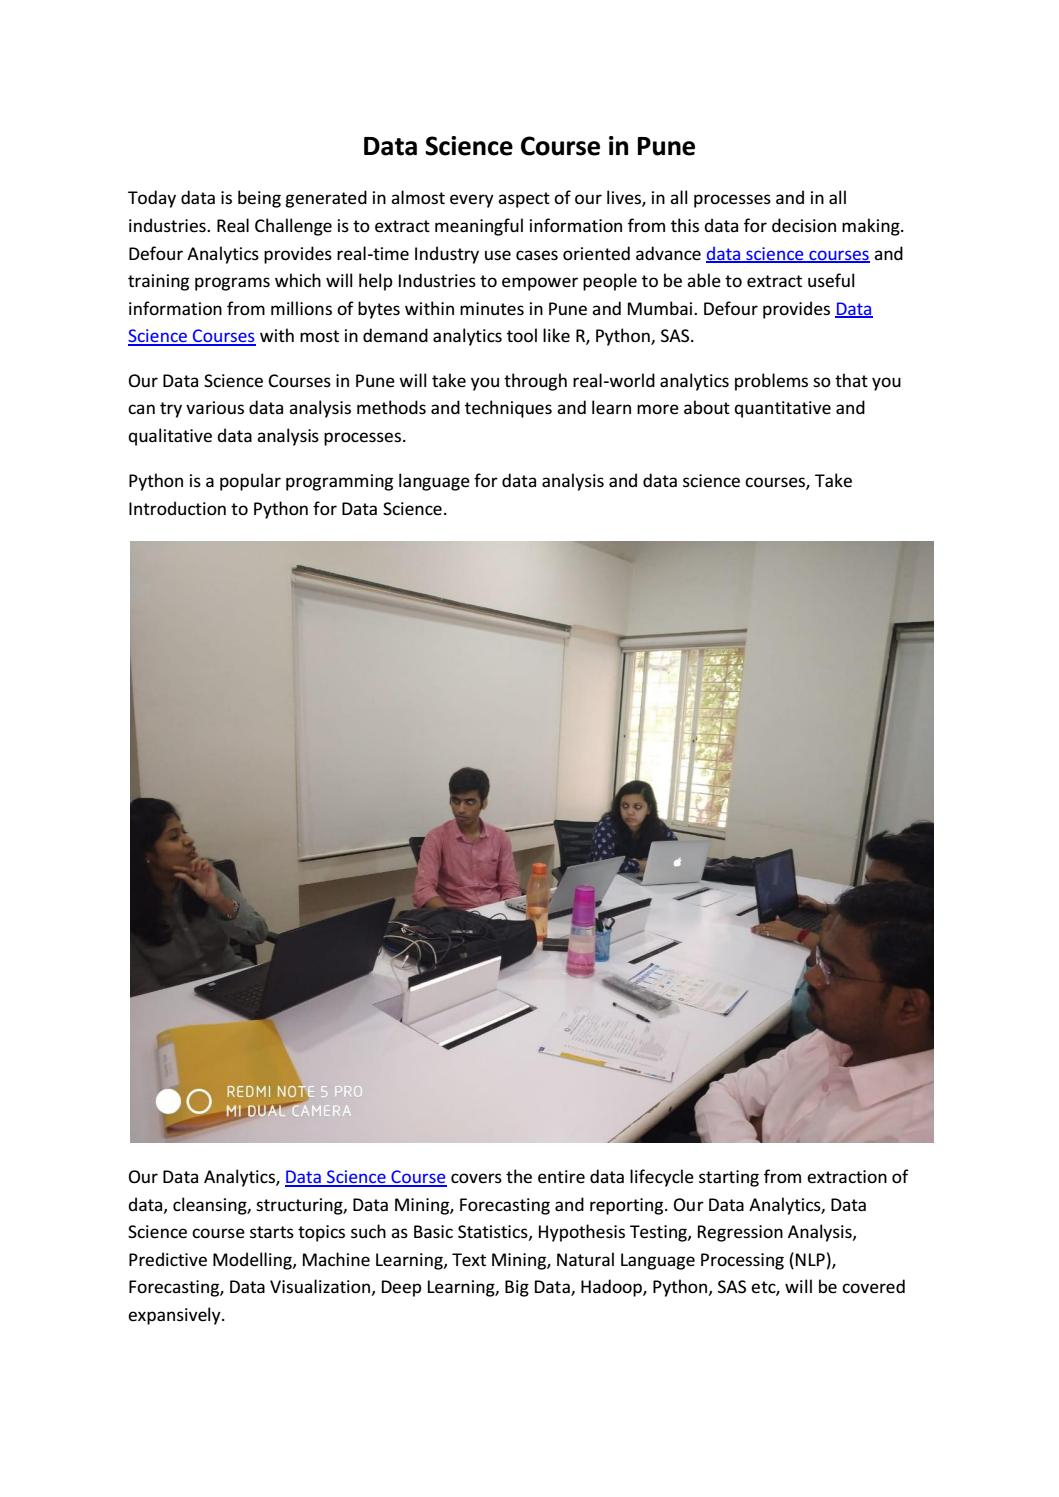 Data Science Course in Pune by Tejas Sonawane - issuu